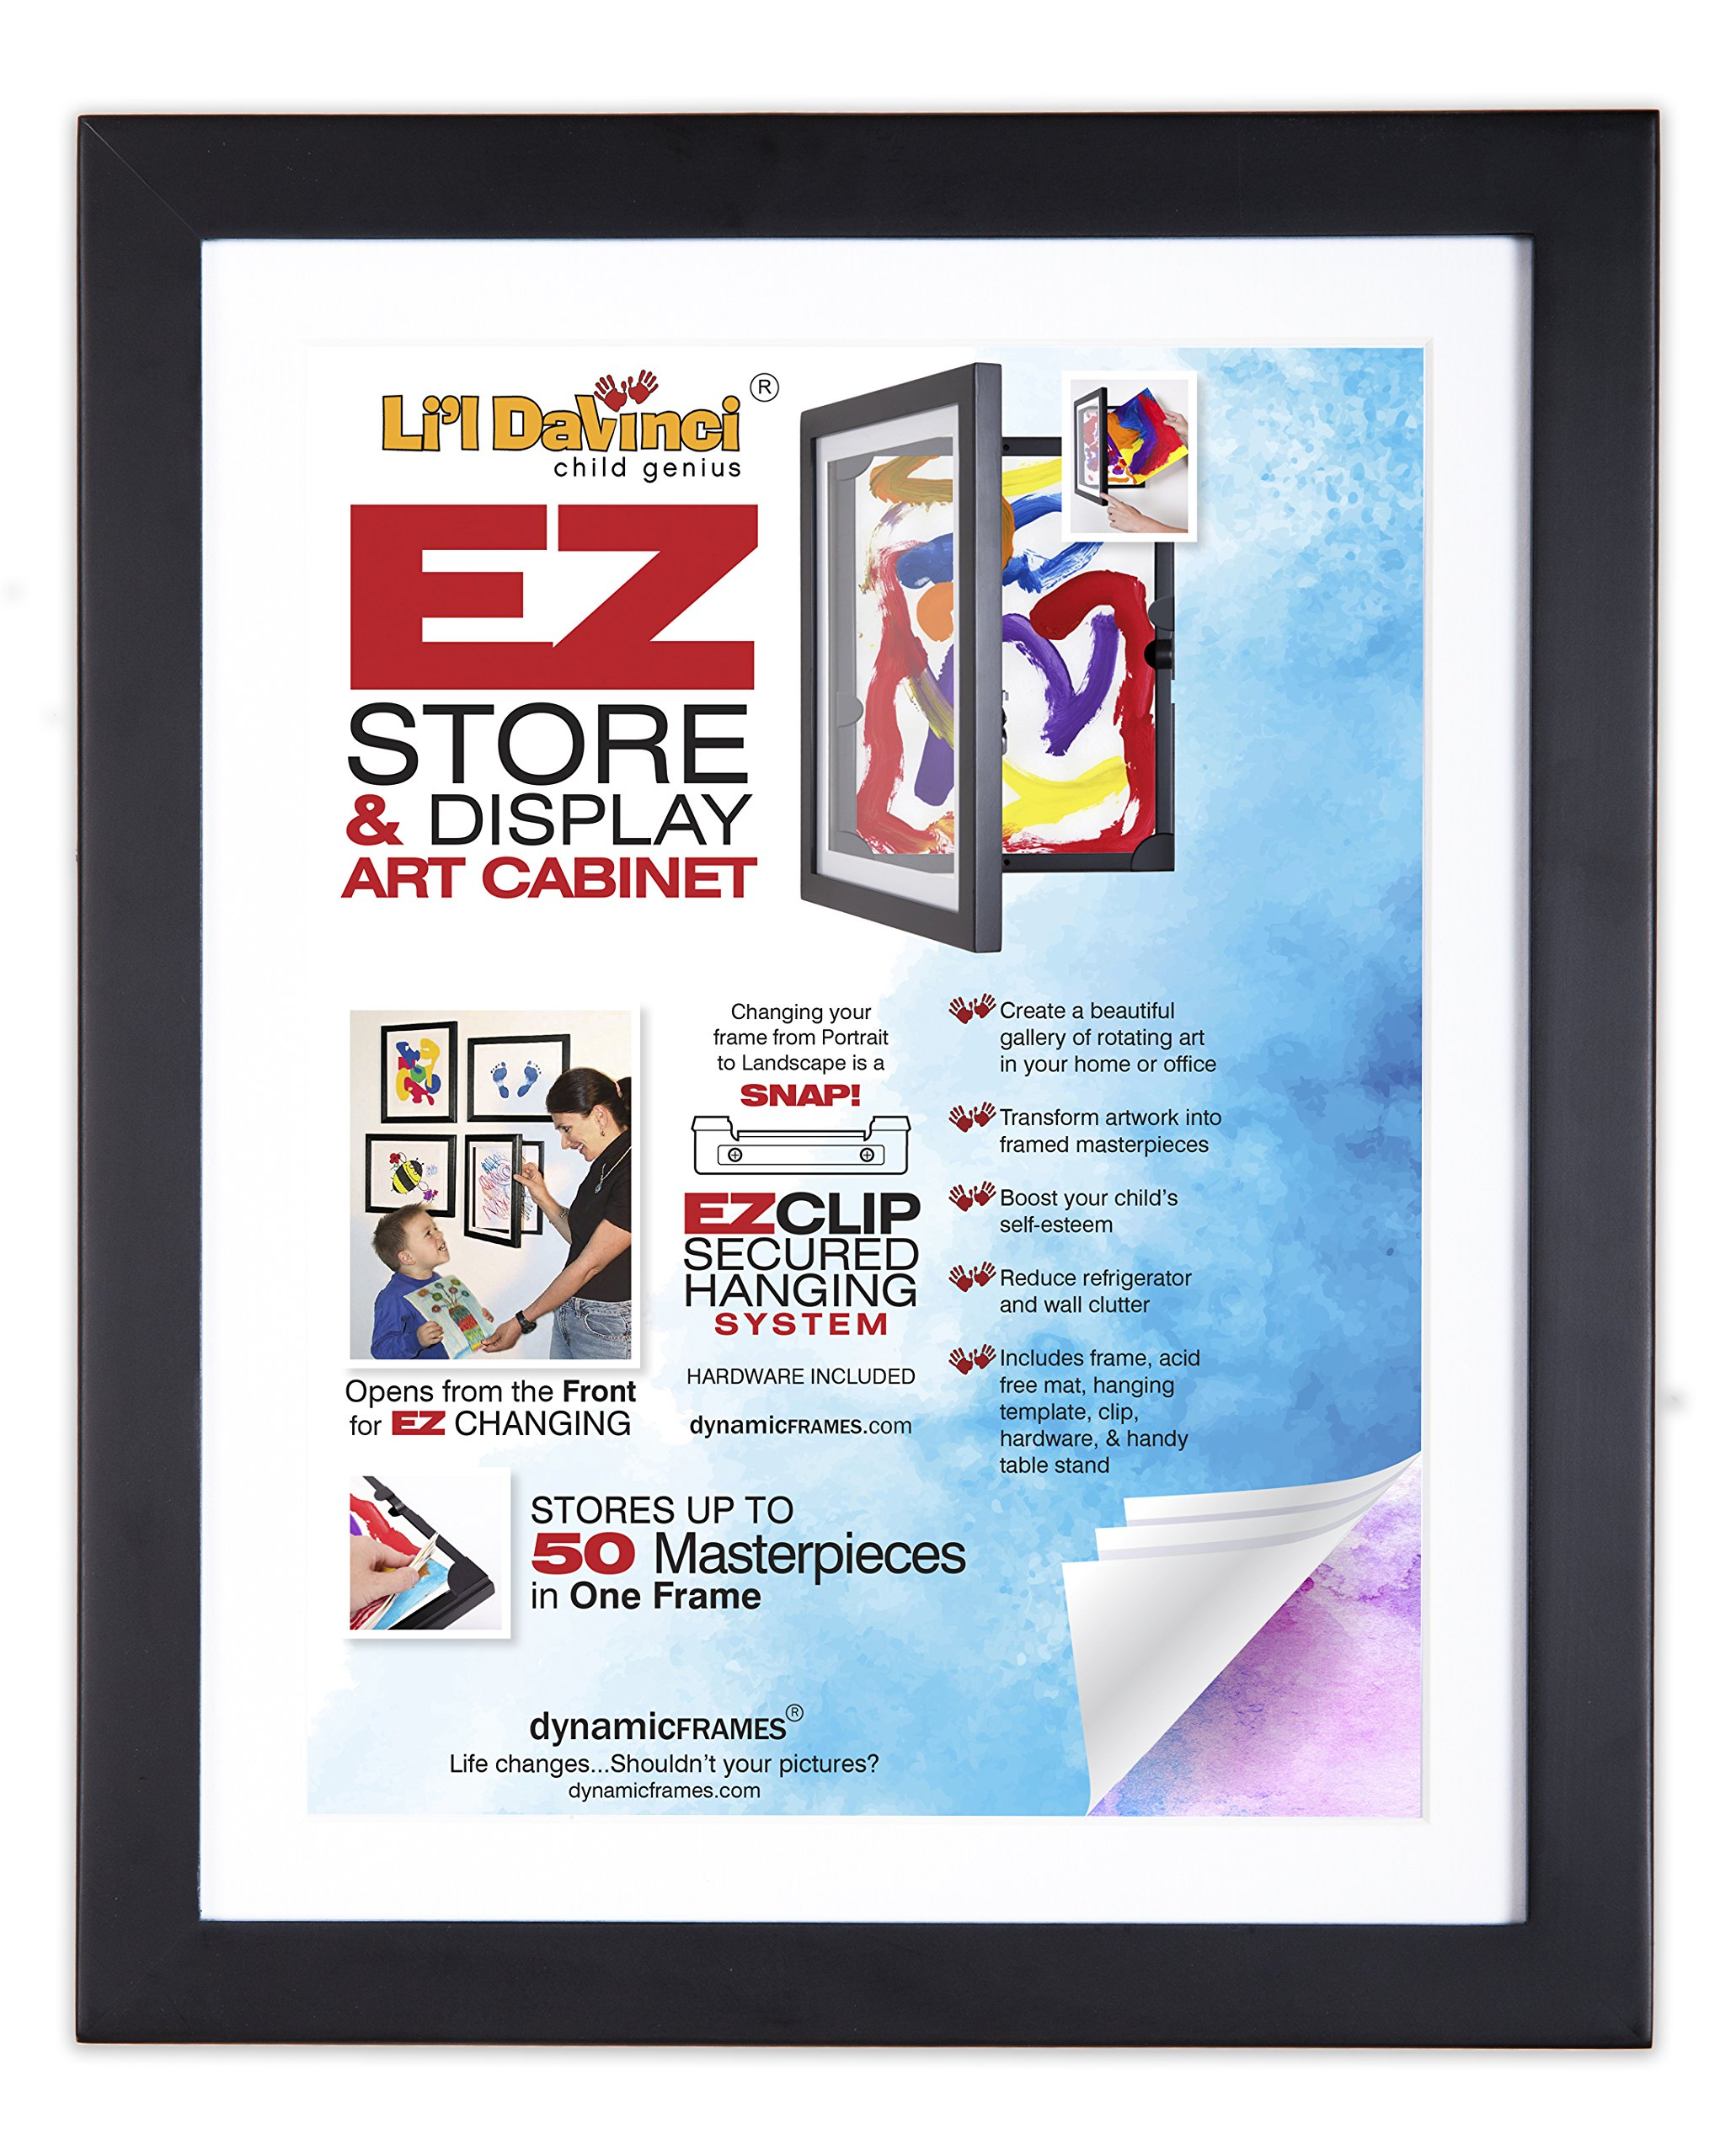 Li'l DAVINCI Kid's Art Frames - Front-Opening, EZ Store Wooden Frames That Allow You to Hold up to 50 Items in Each! Package of 2 (for 8.5x11 Items, Black)